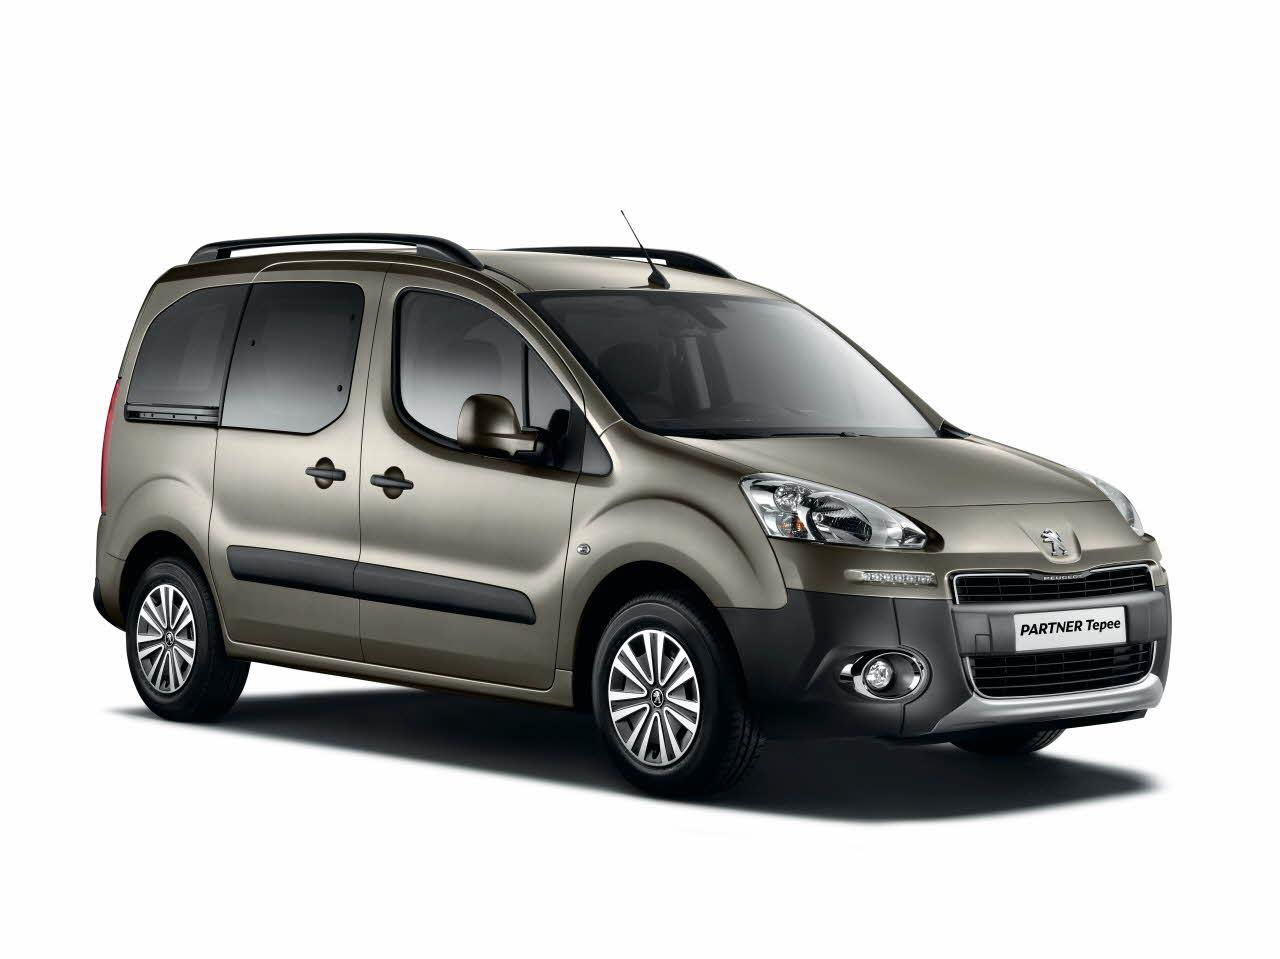 2012 Peugeot Partner Tepee Mpv 5-door